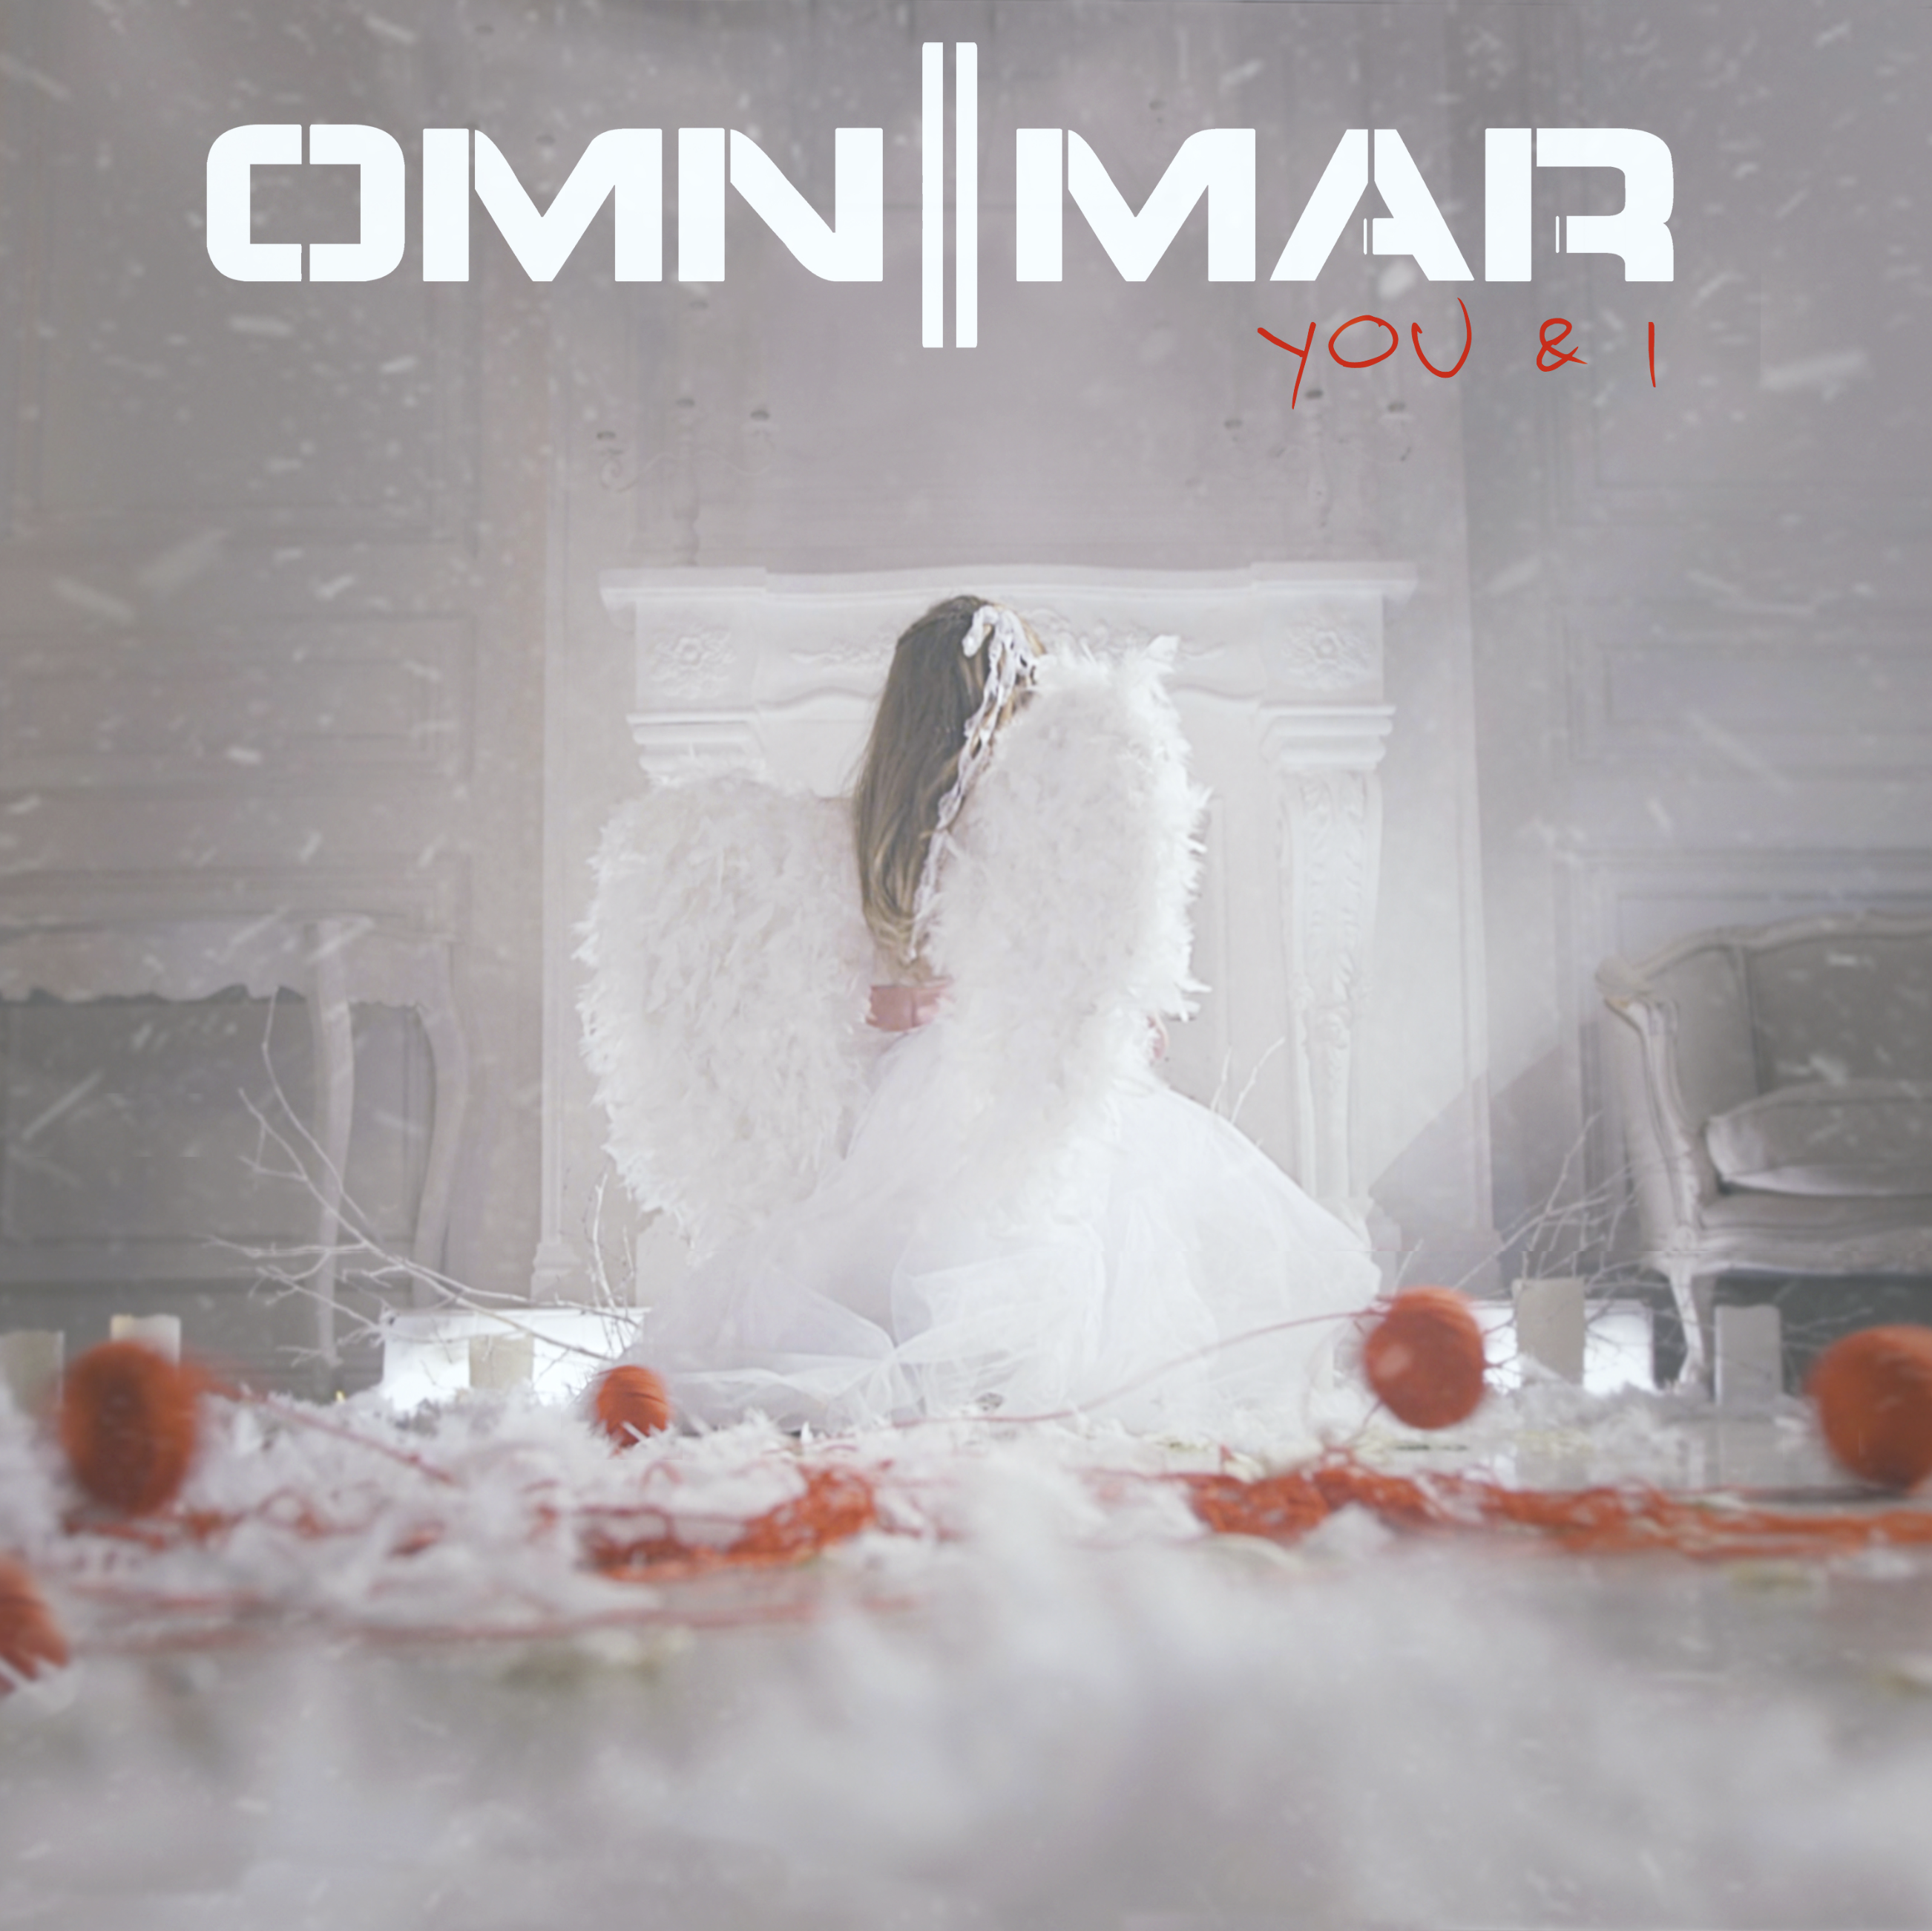 OMNIMAR - You & I